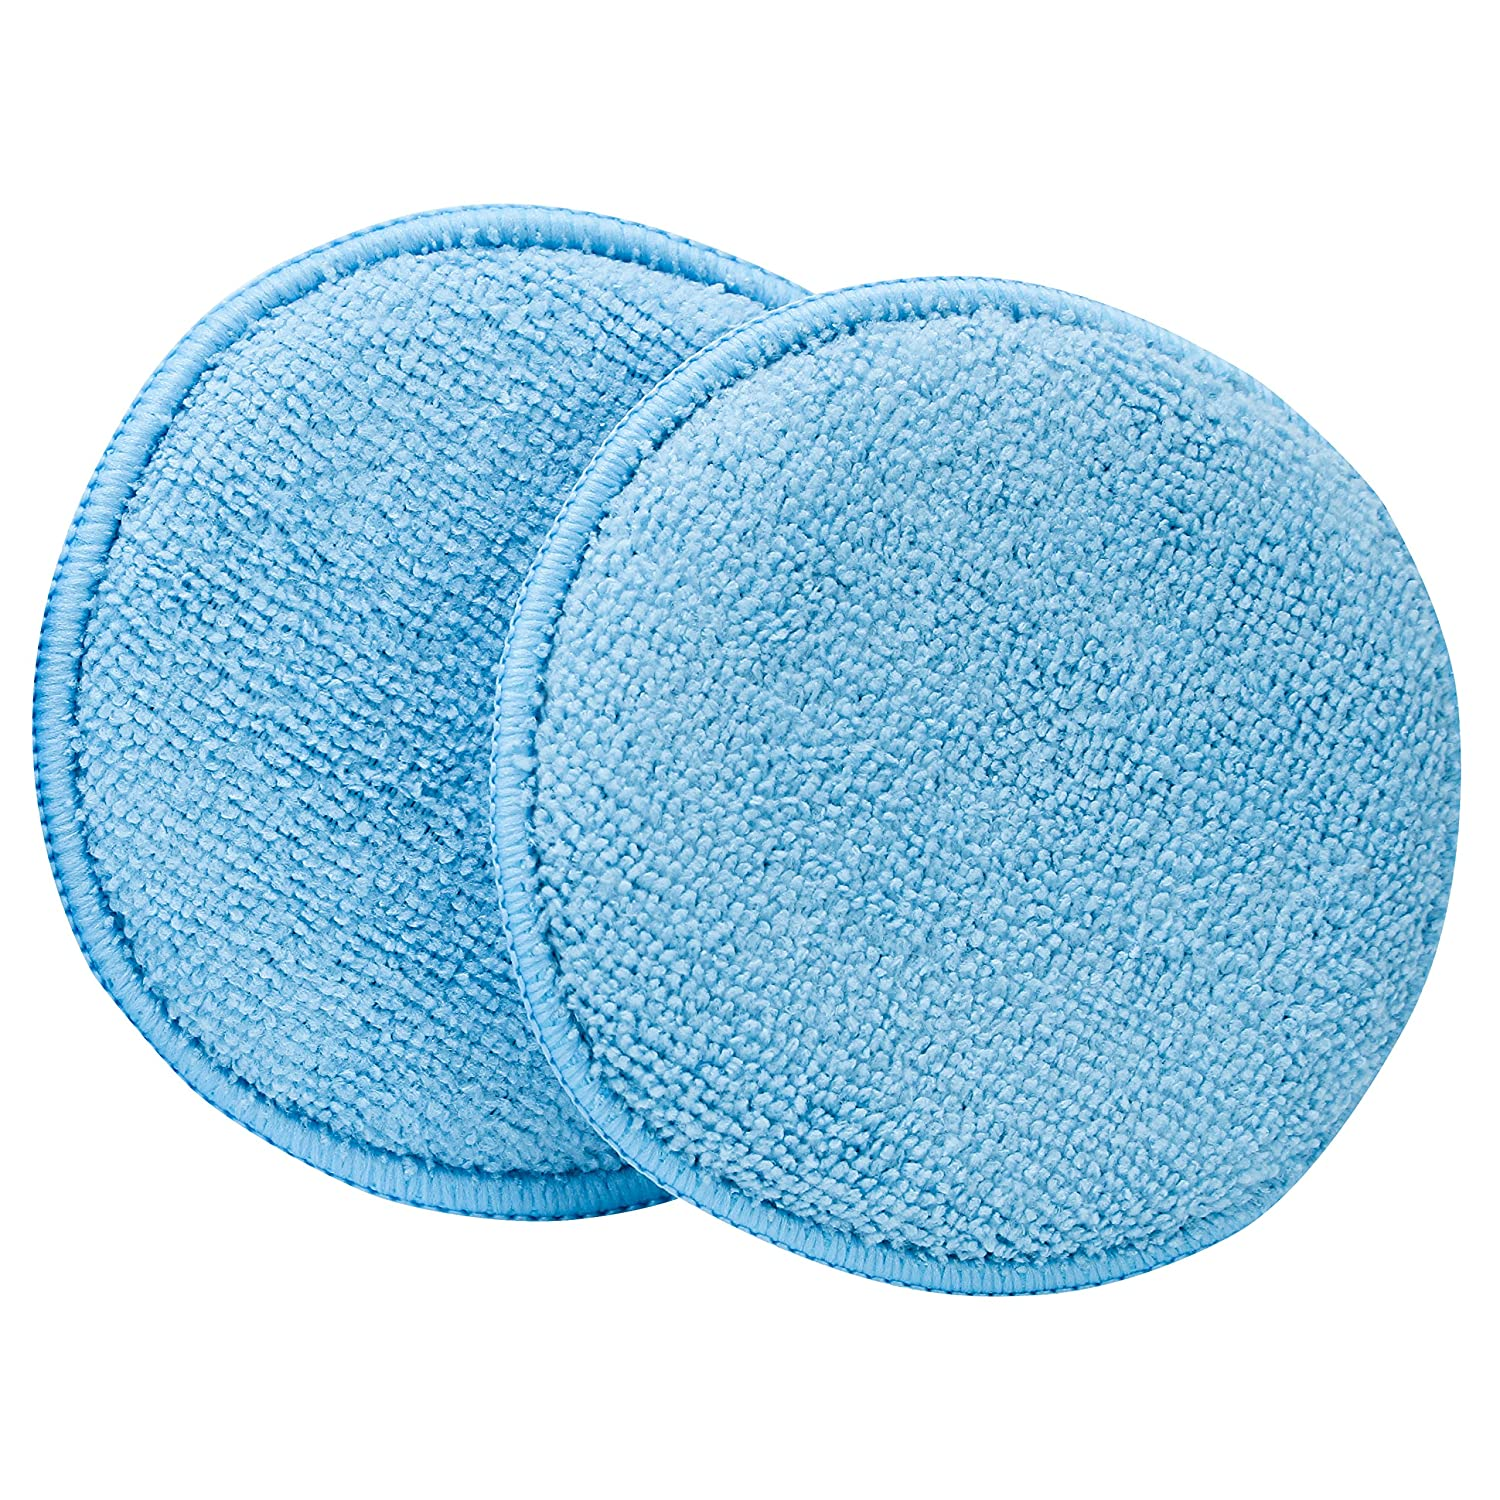 Interior Design Ideas Viking Car Care Microfiber Applicator Pads